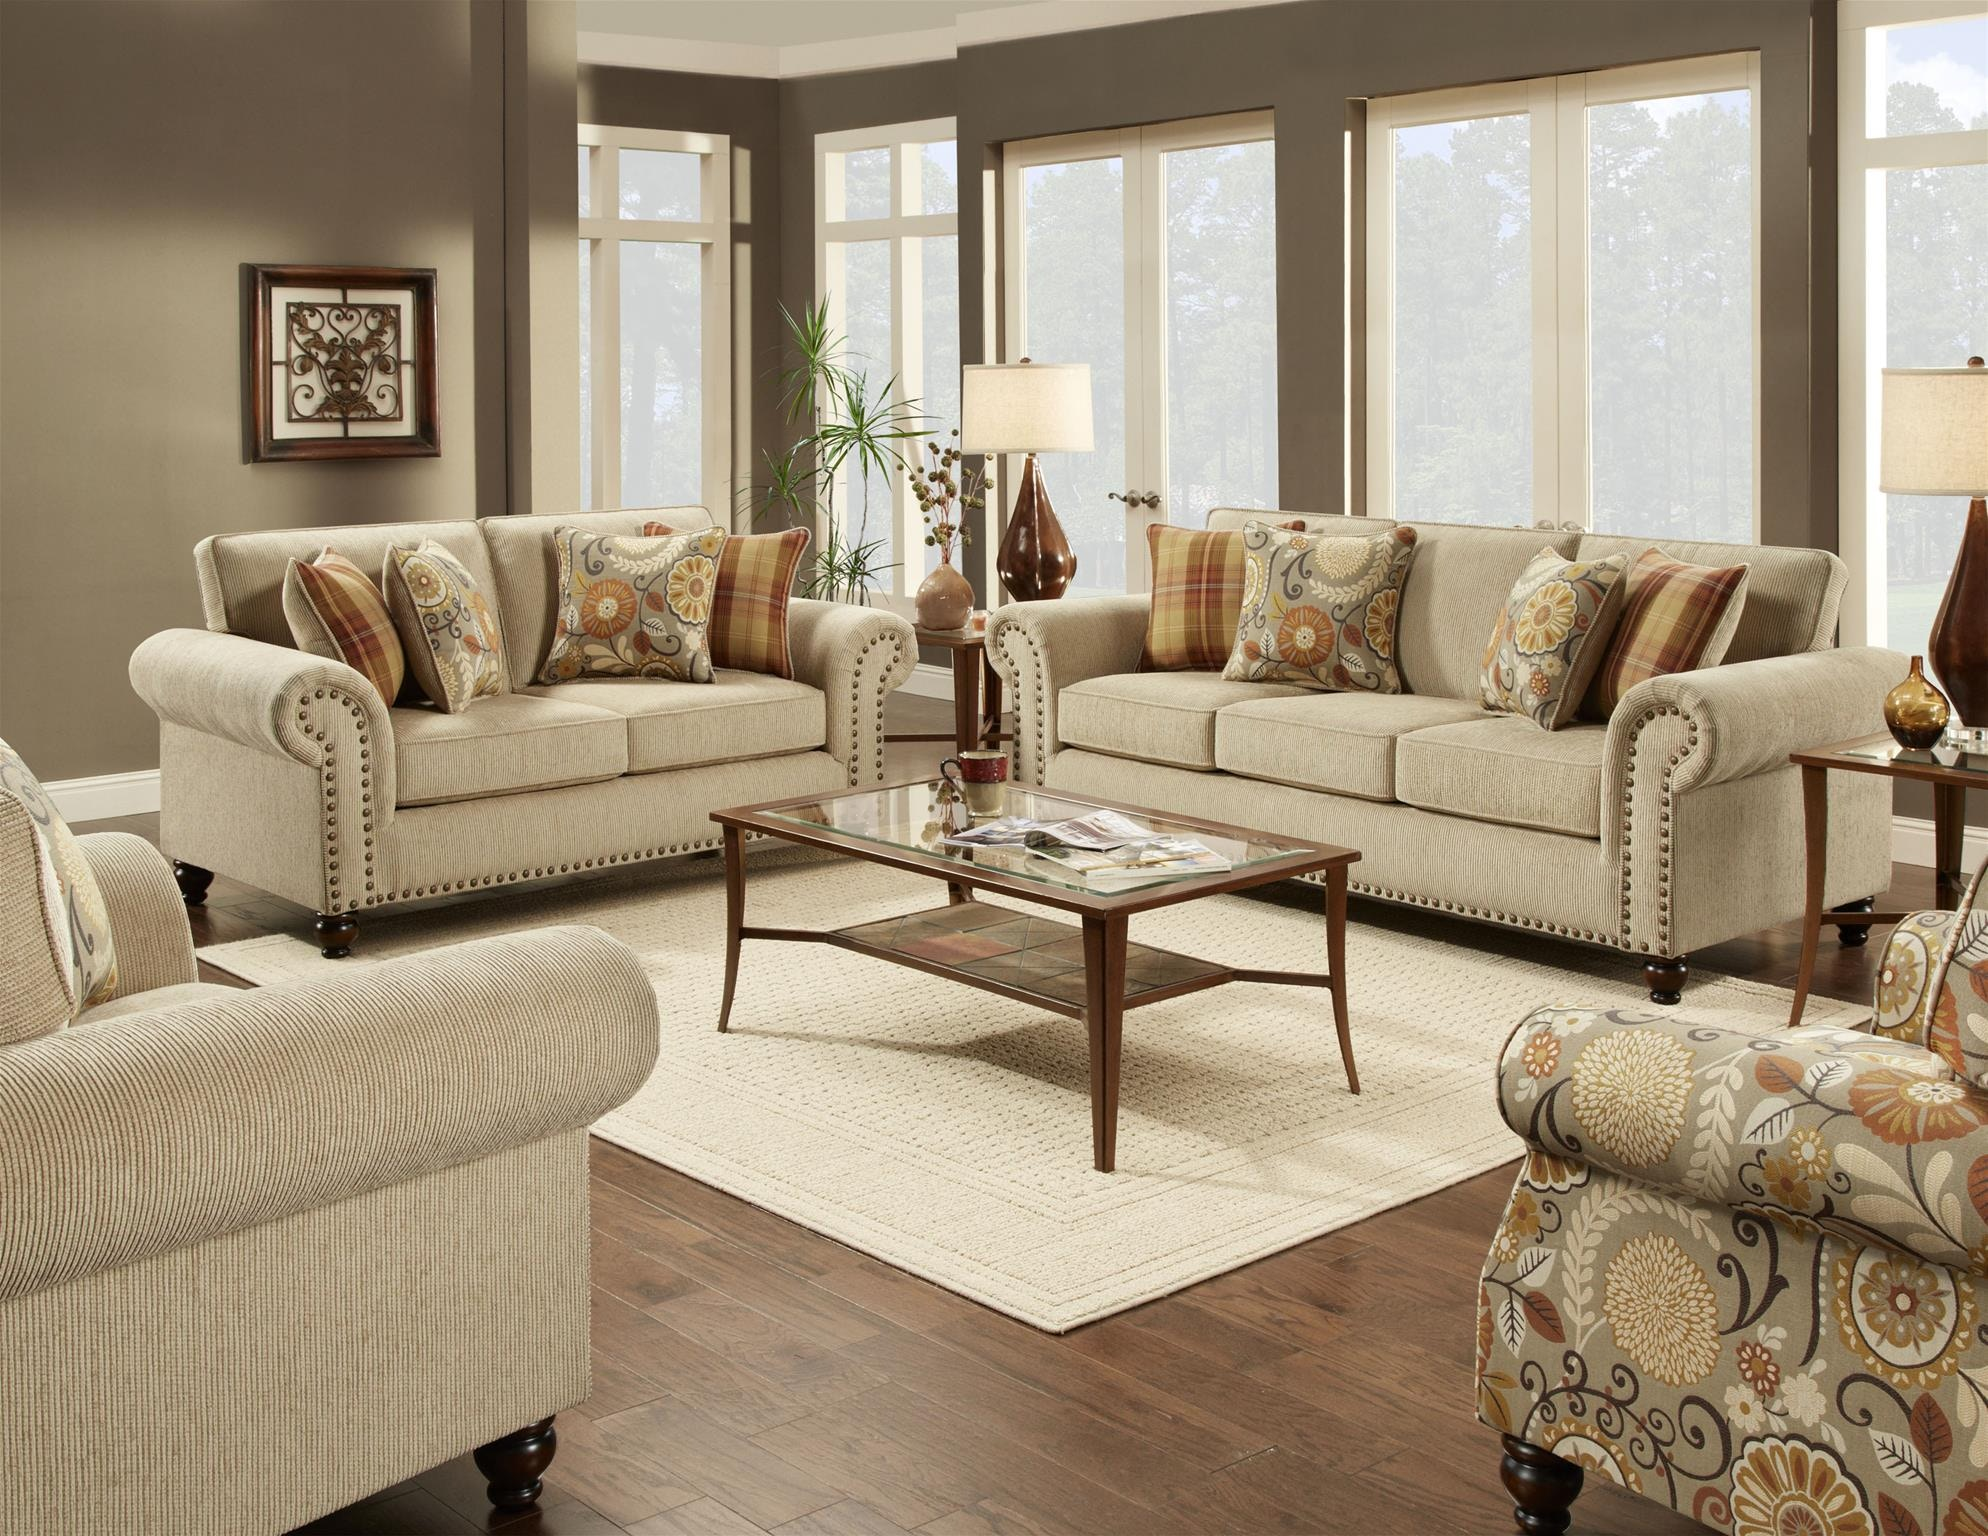 Exceptionnel Fusion Living Room Chair 1/2 3112Out West Linen At Priba Furniture And  Interiors